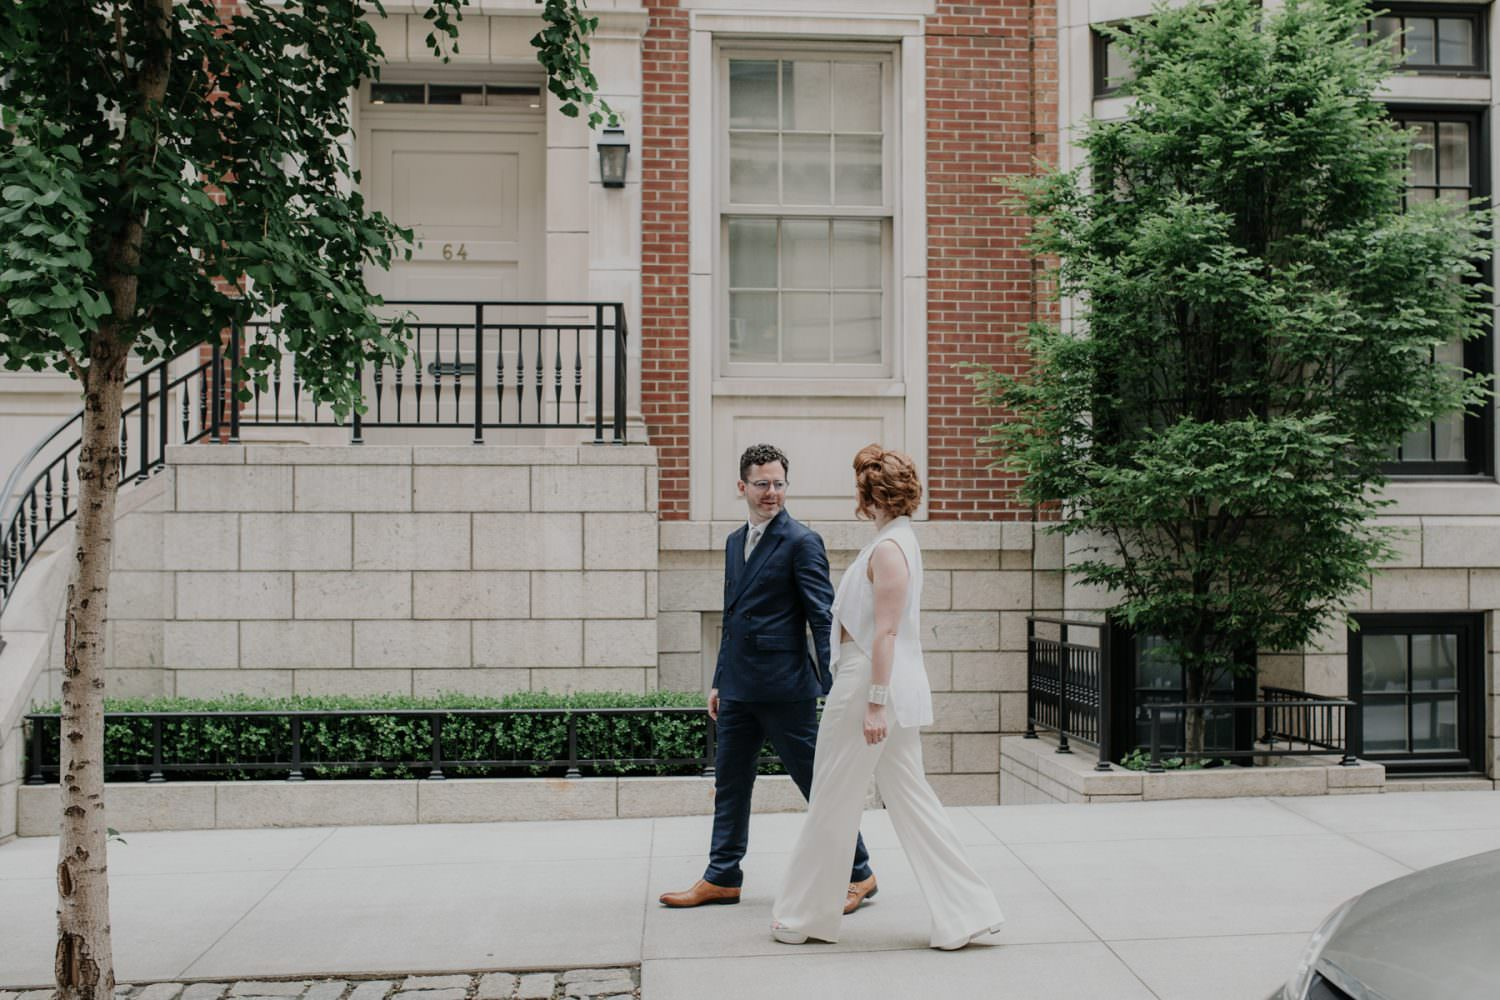 Groom looking at his Bride while walking the streets of NYC